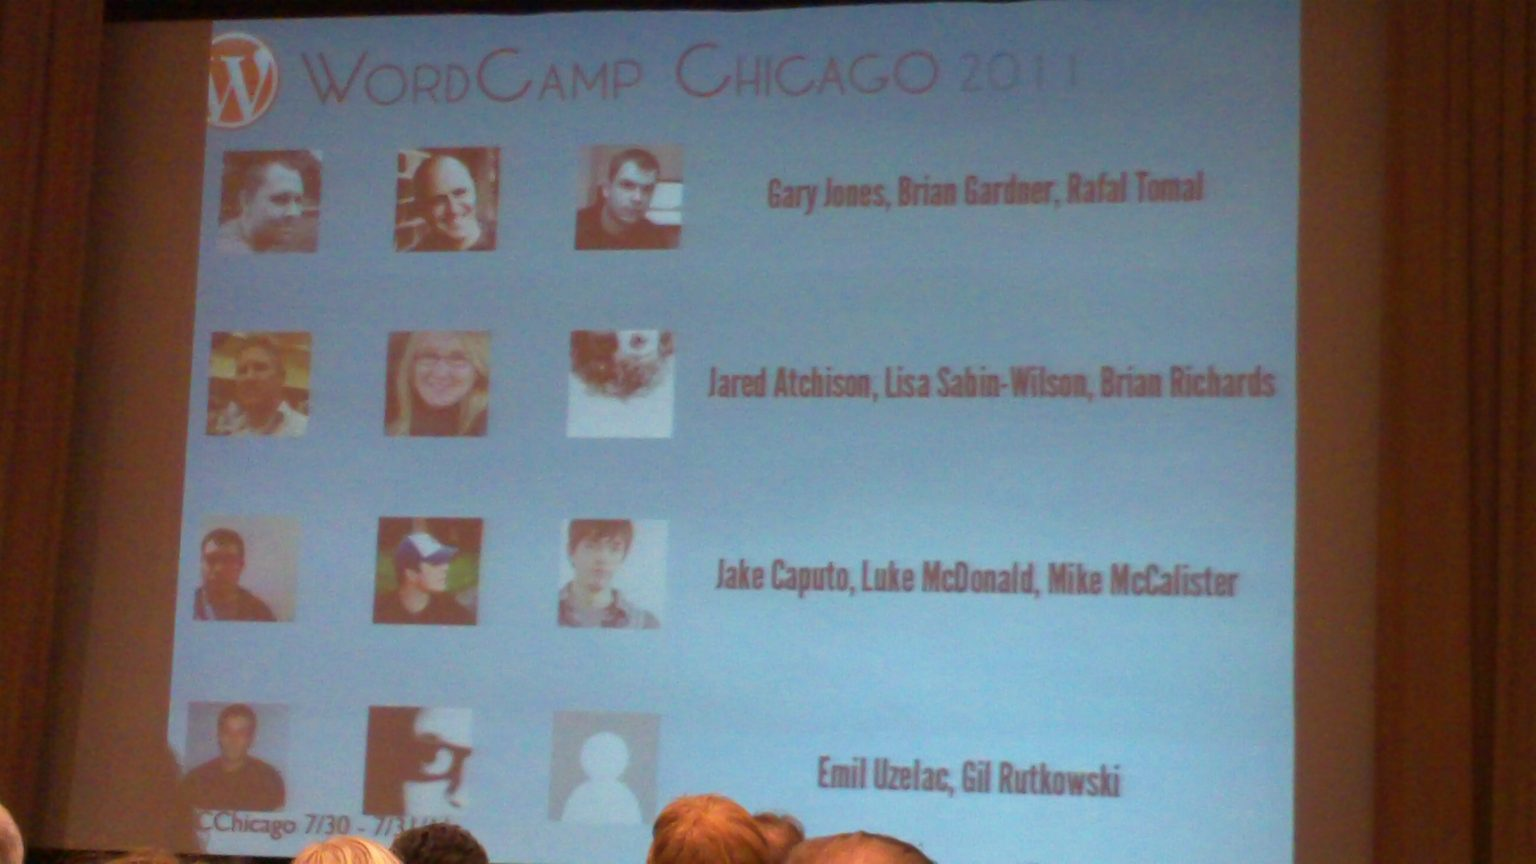 Photo of a presentation slide, showing Gary's picture and name among others